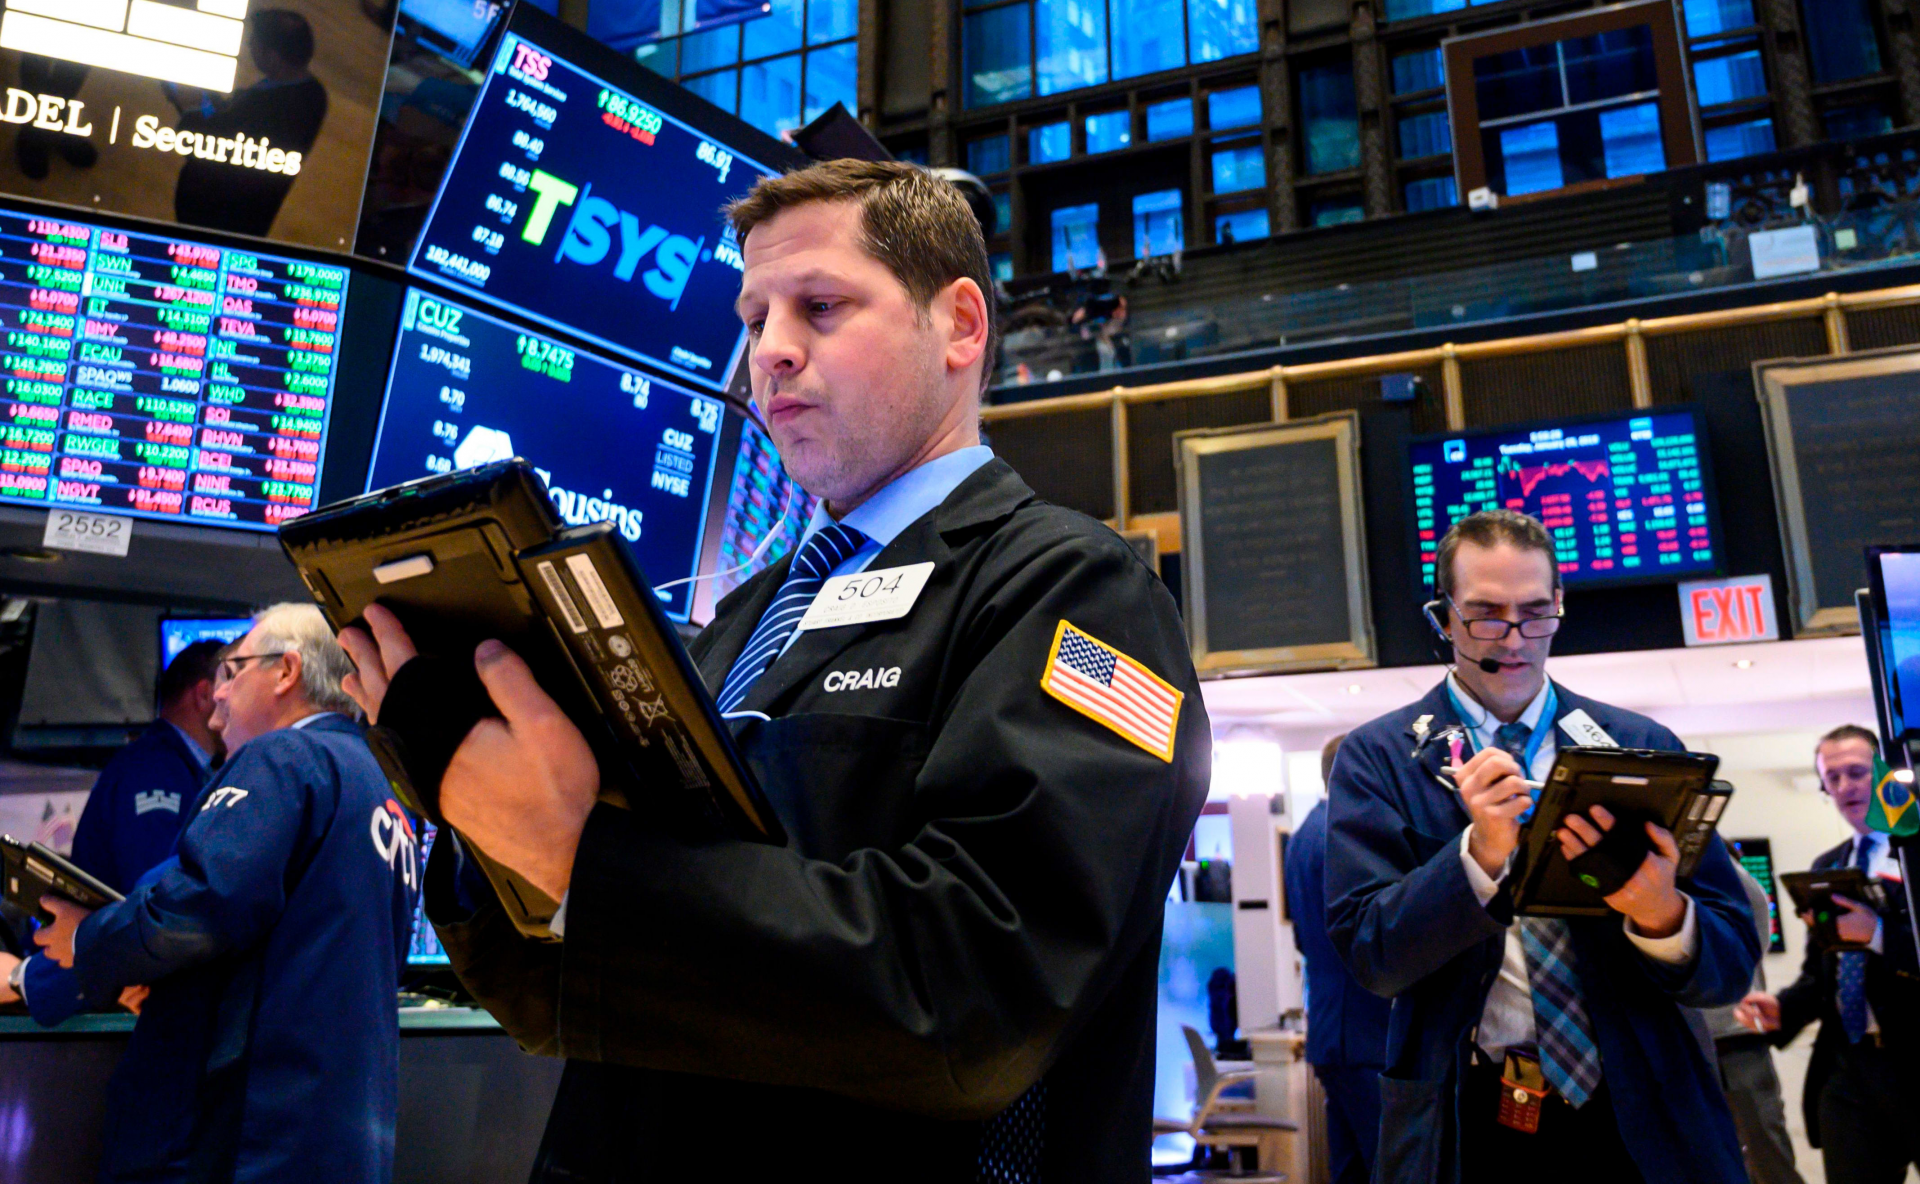 stock price today us stock markets are down stock makes big moves in pre market